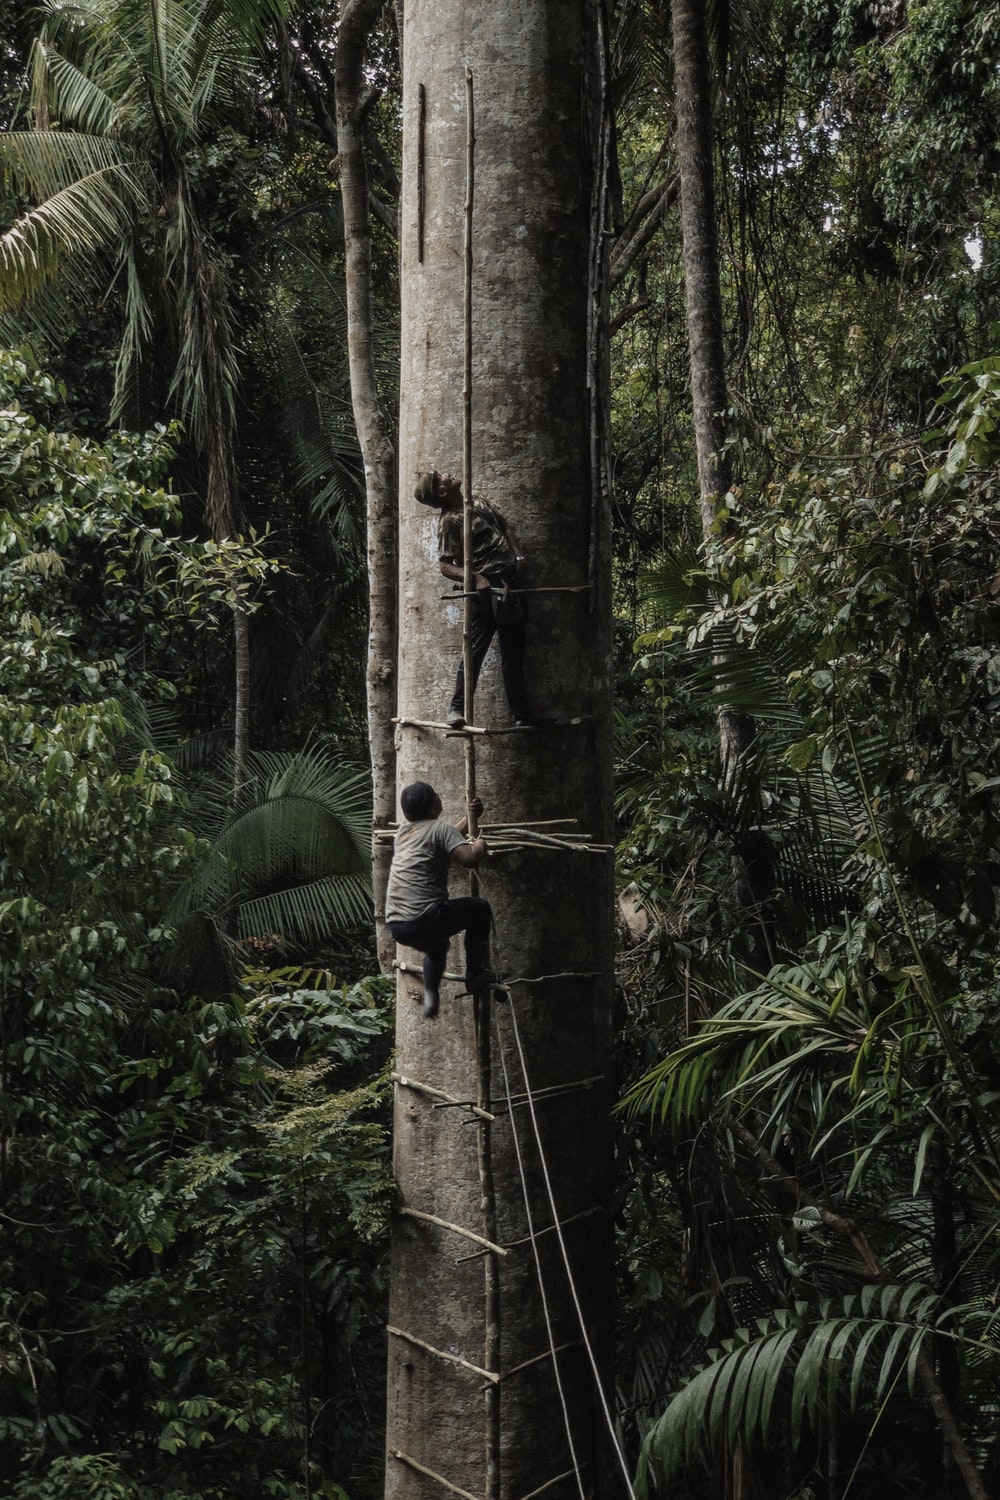 two men climbing on tall tree